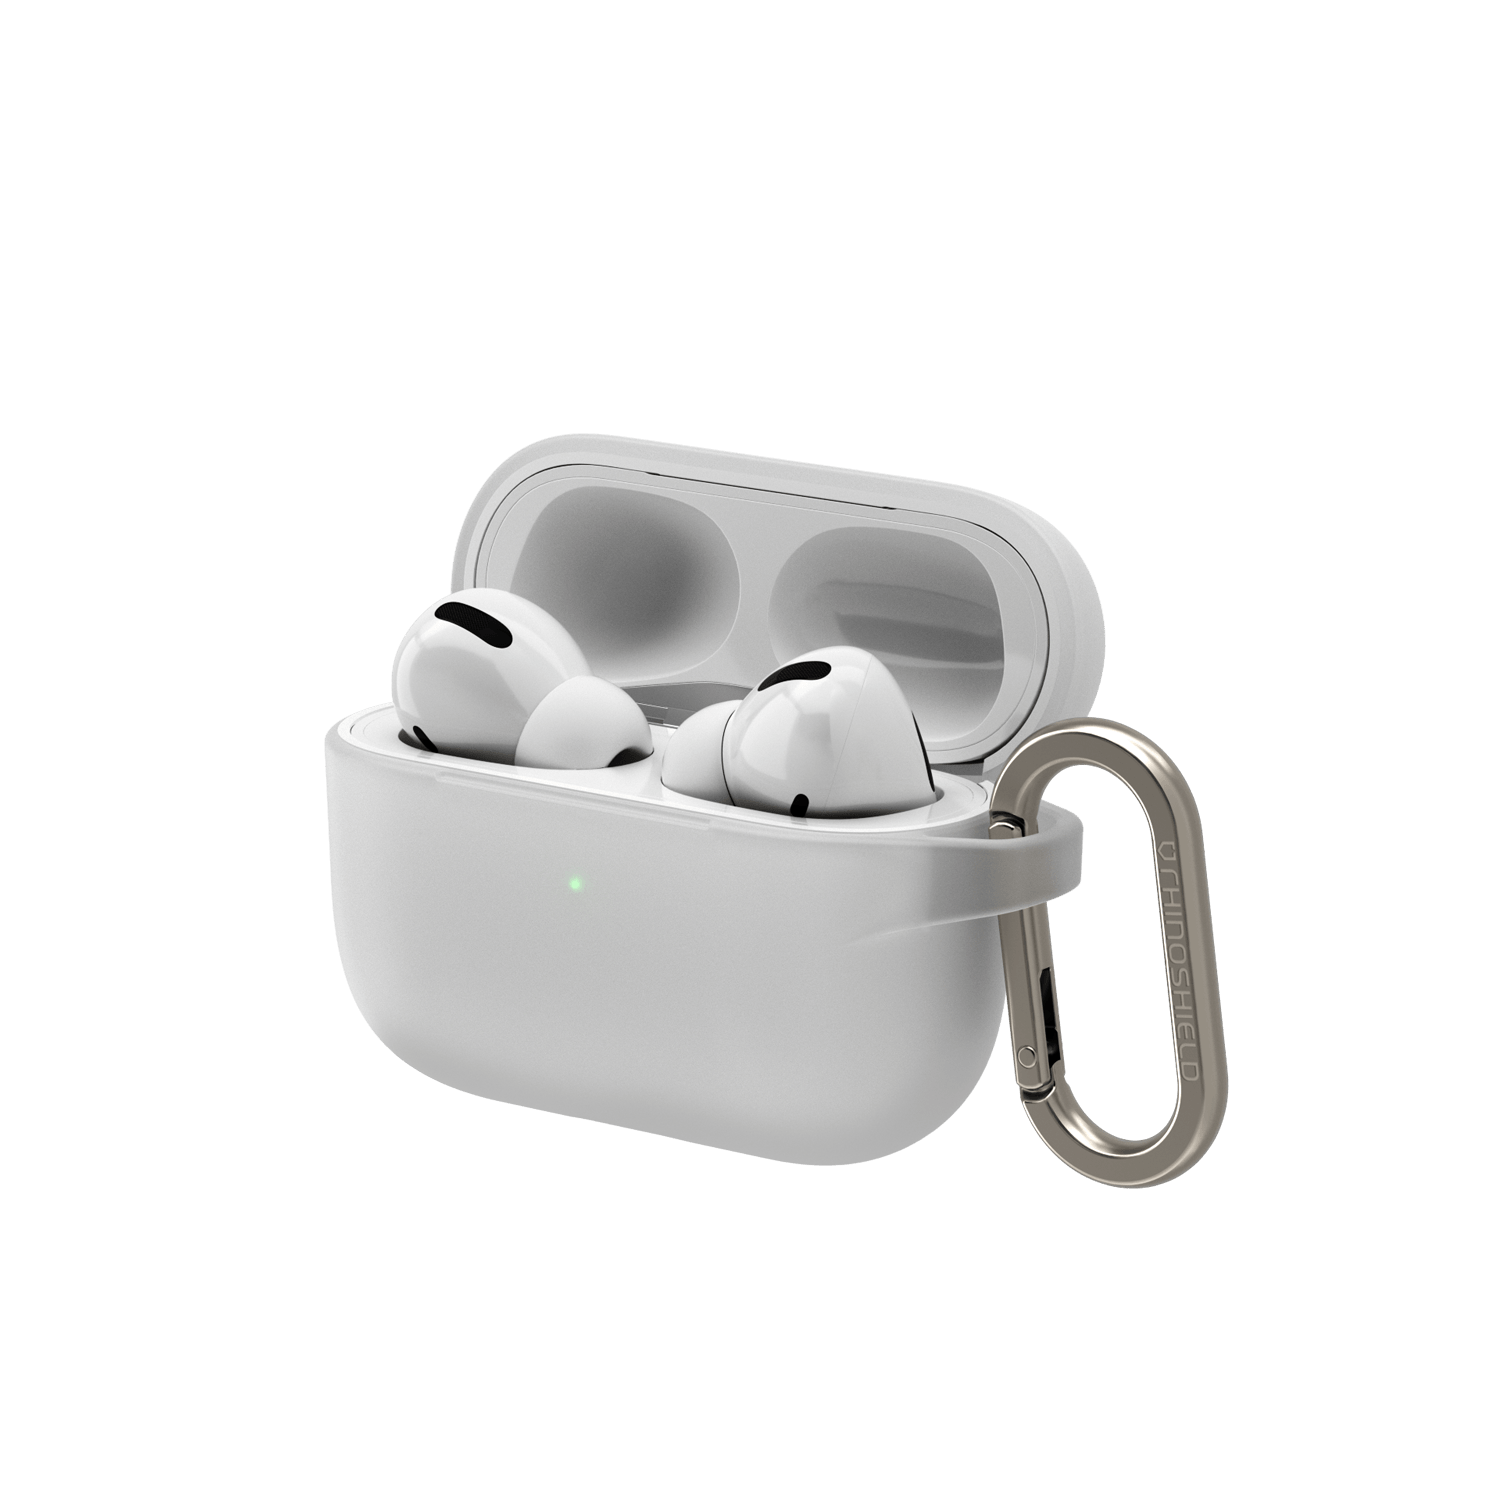 RhinoShield AirPods Pro Case